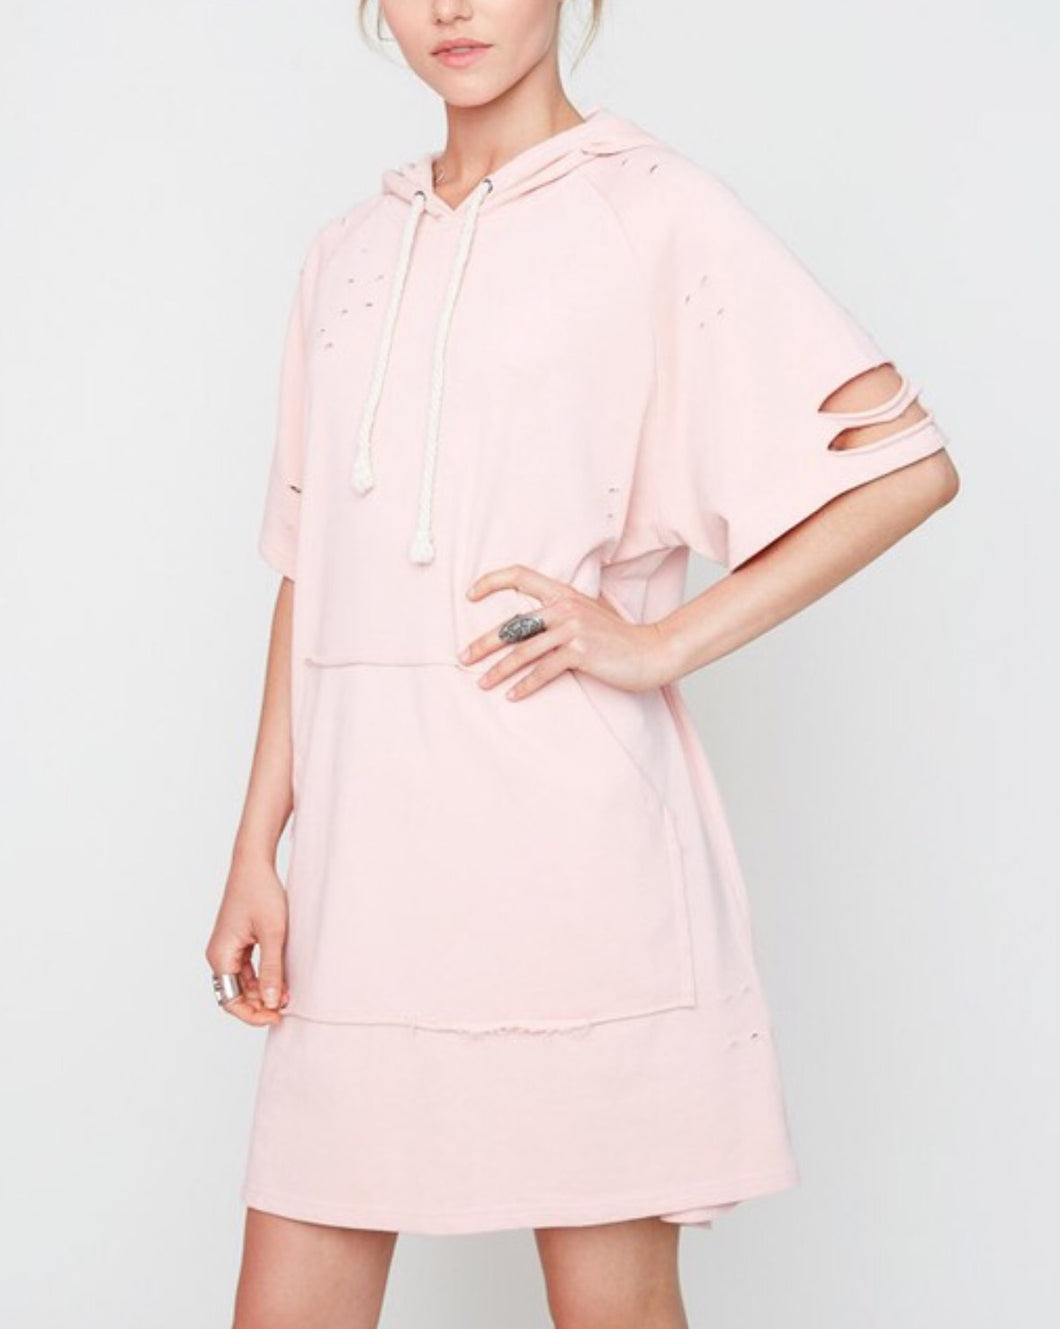 DISTRESSED PINK FRENCH TERRY DRESS